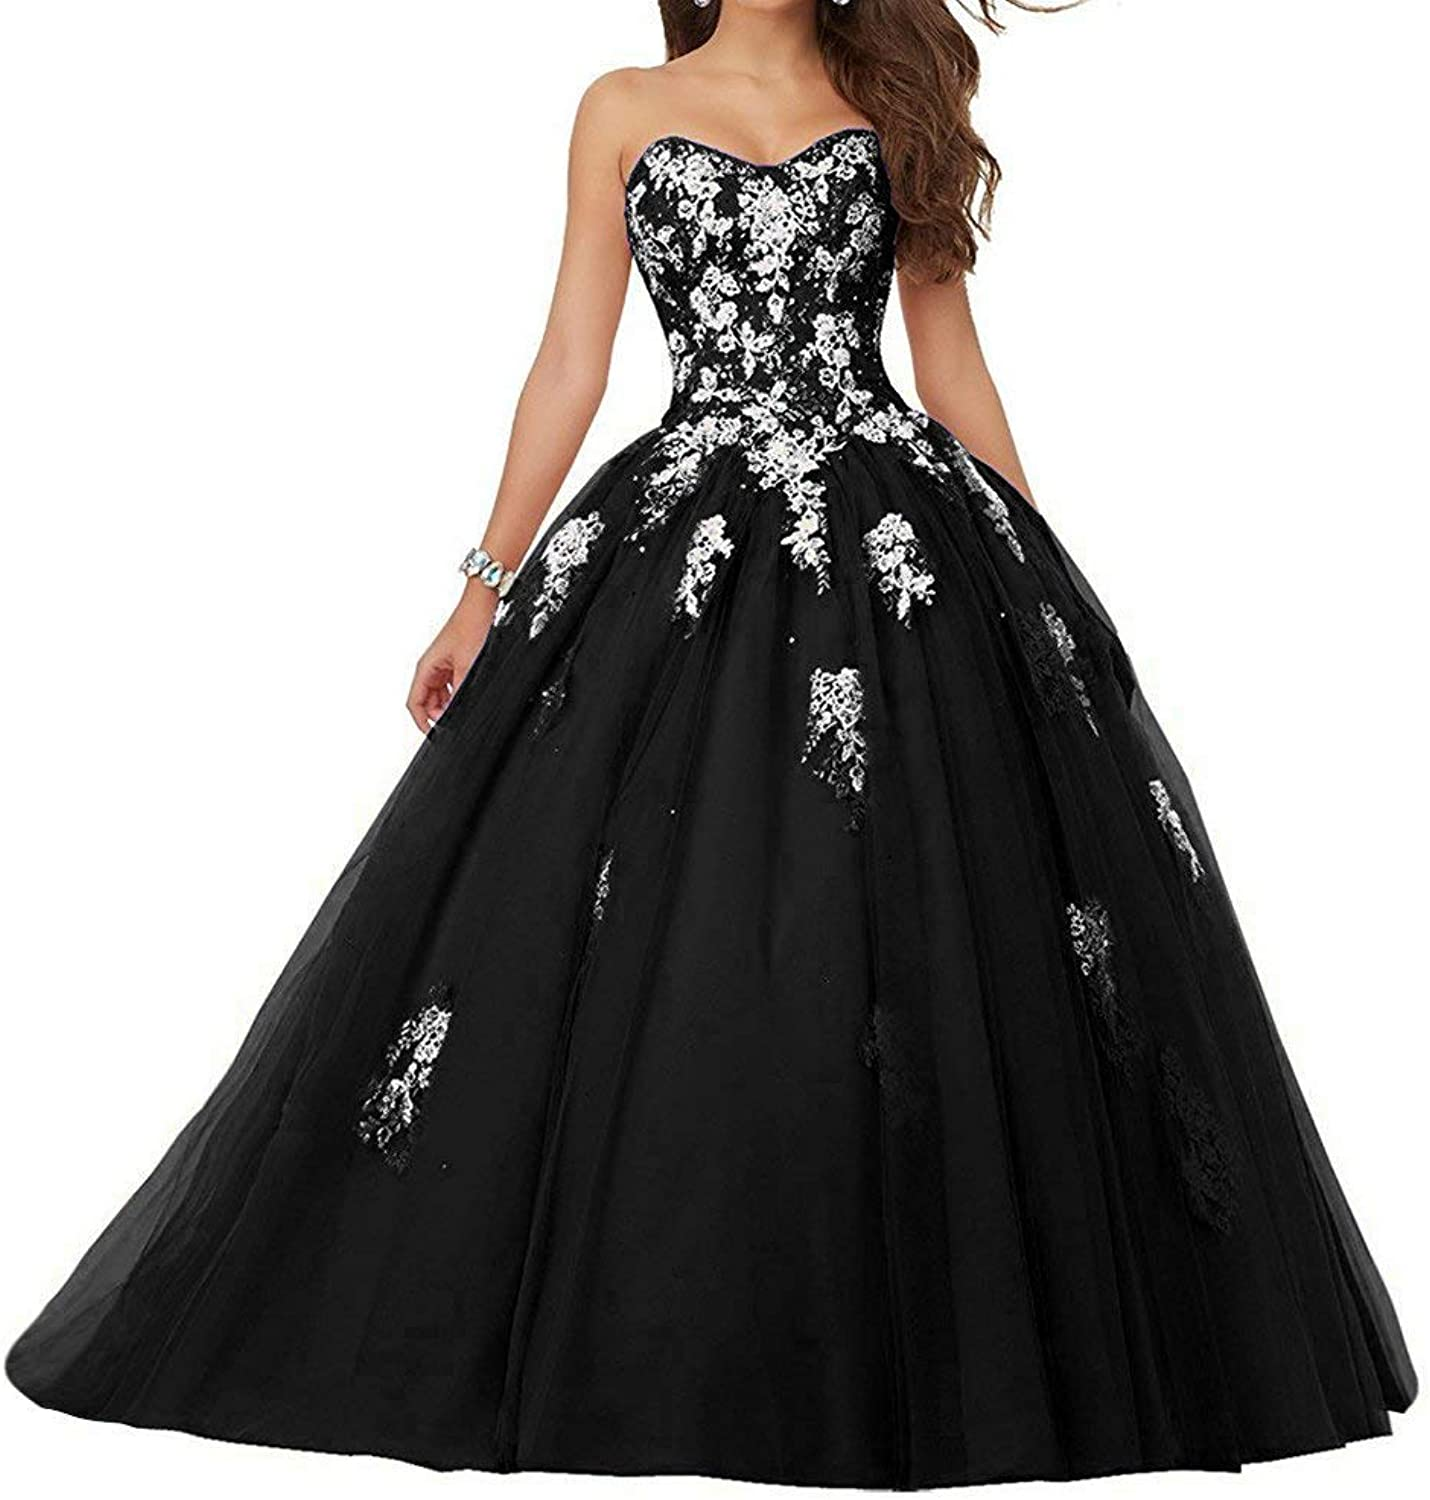 Voteron Women's Beaded Lace Appliques Prom Dress Ball Gown Sweet 16 Quinceanera Dresses